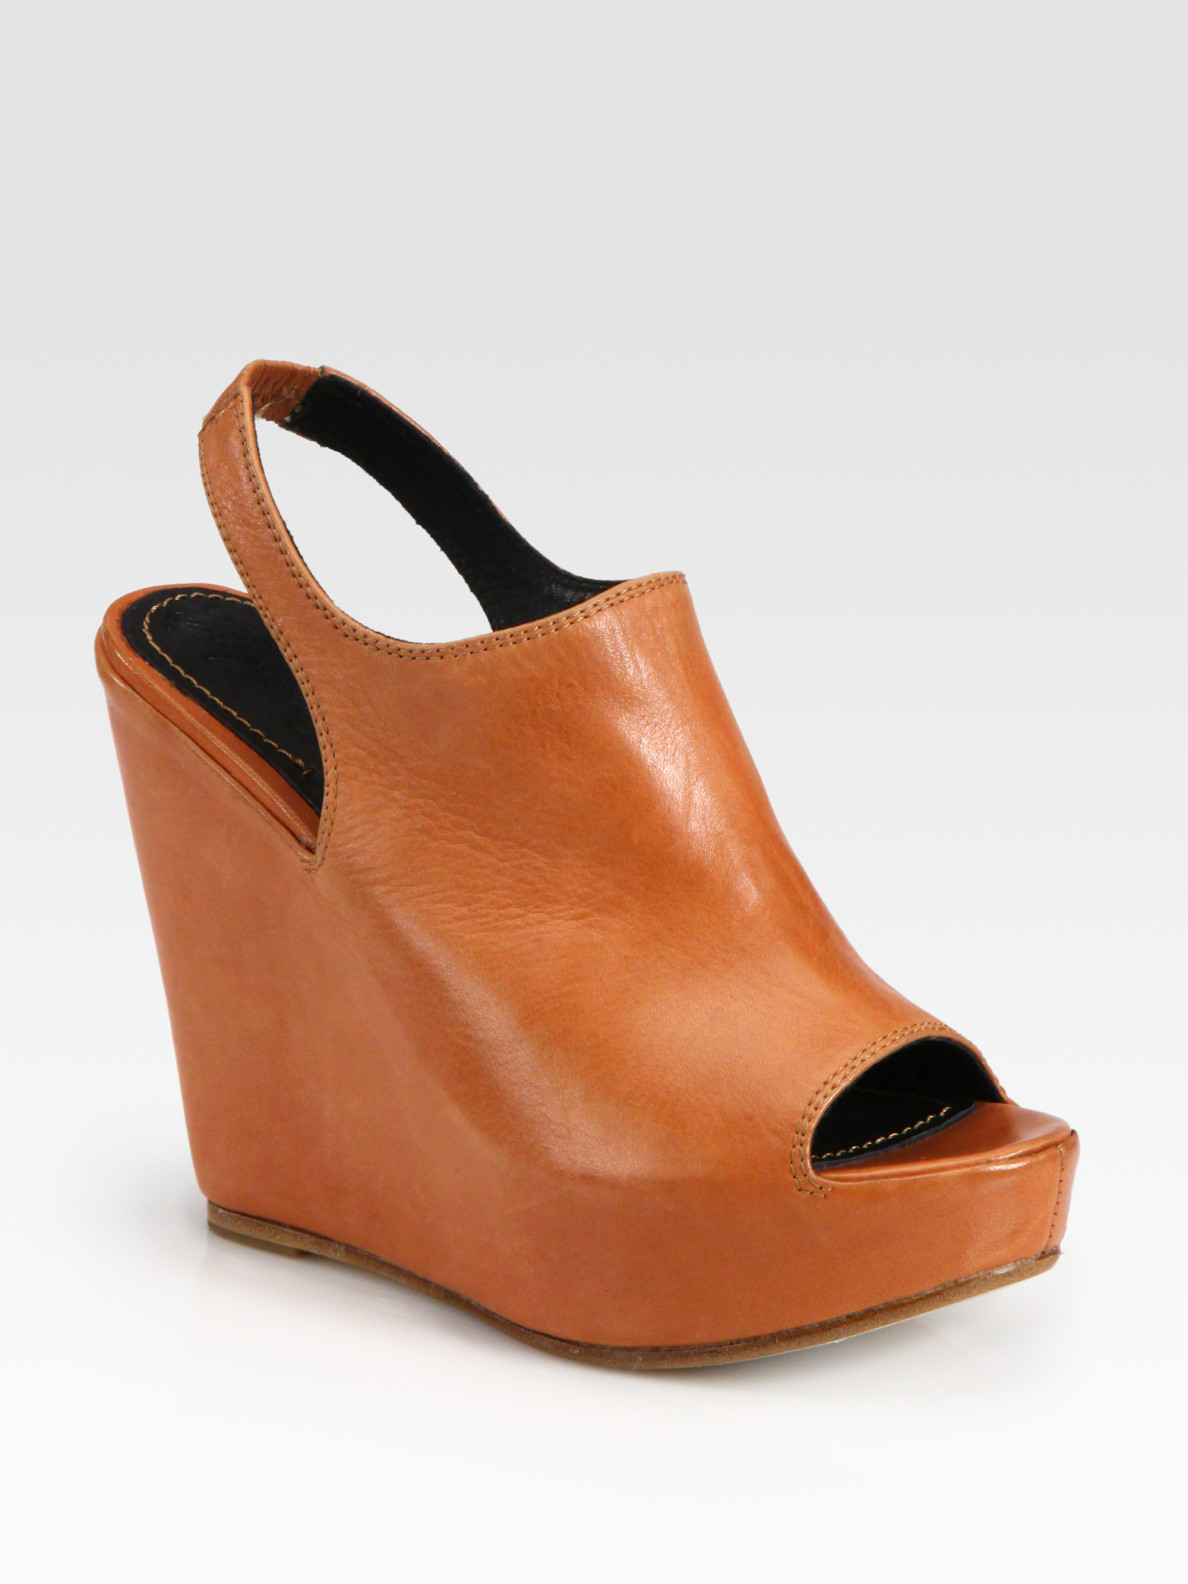 visit online Elizabeth and James Woven Wedge Sandals cheap discount official site cheap price 7RHxapr